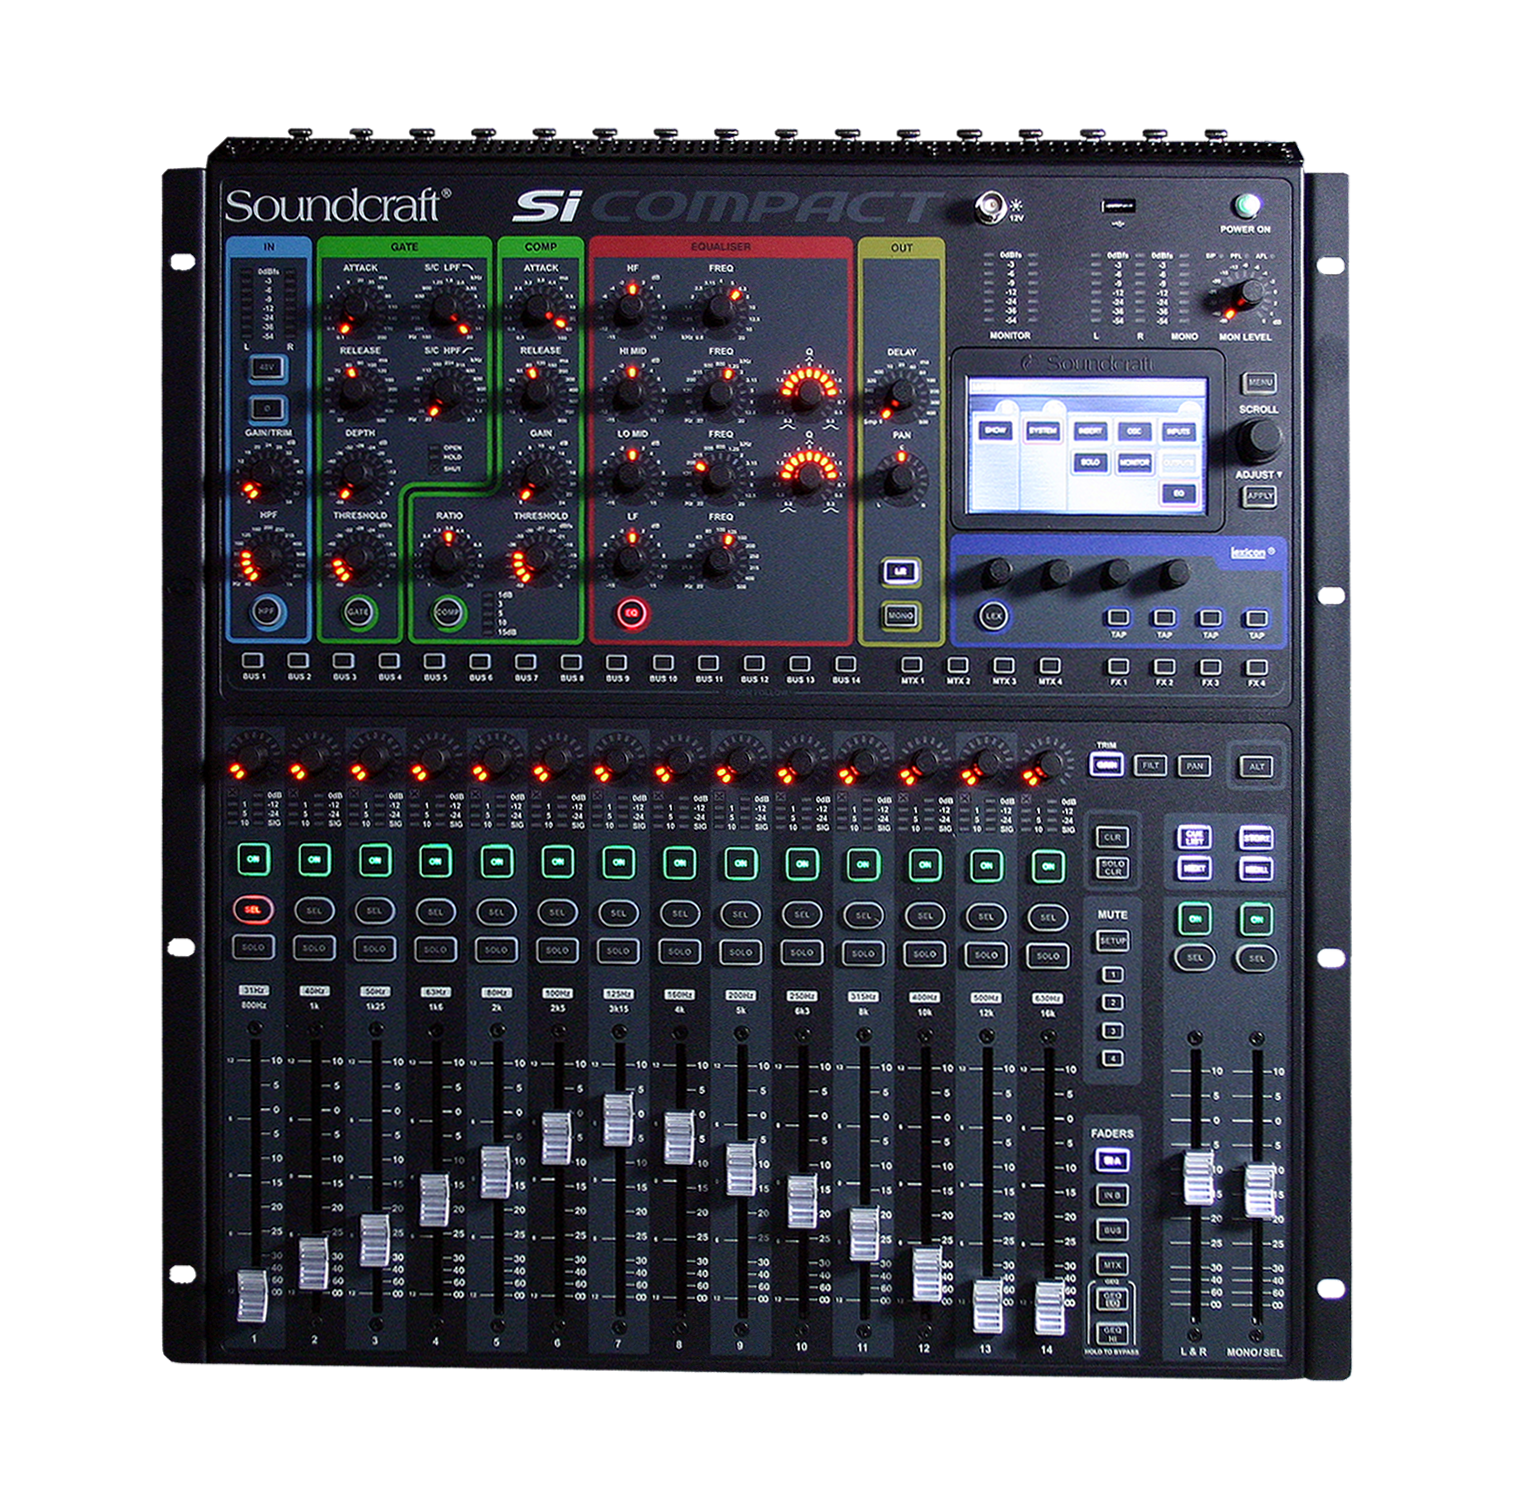 Si Compact 16 | Soundcraft - Professional Audio Mixers